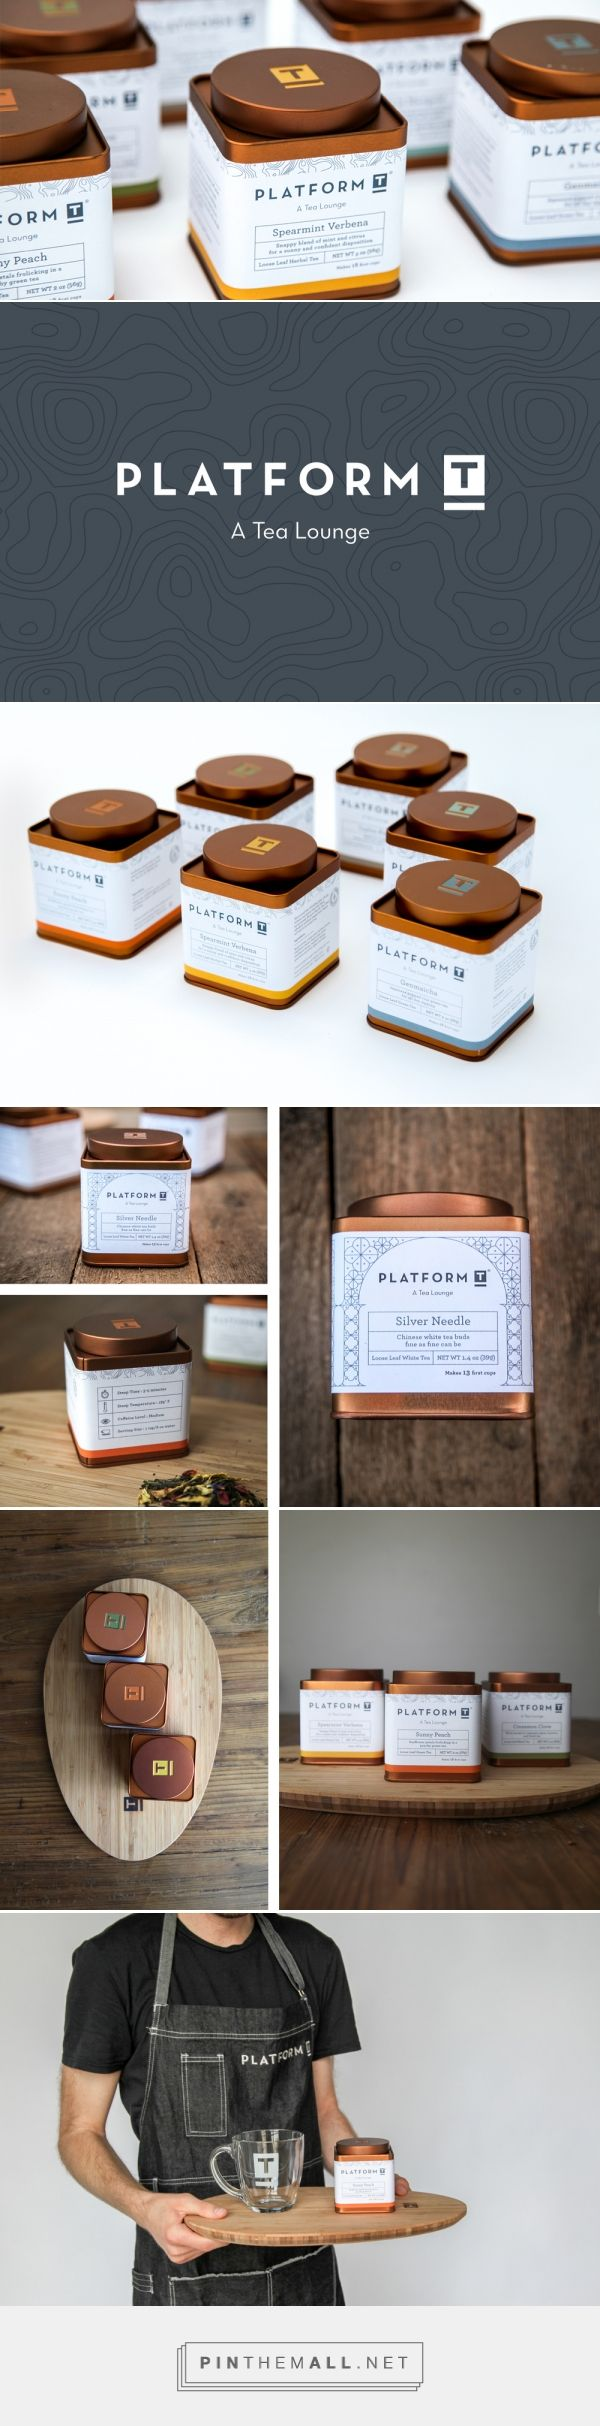 Platform T Packaging by Karsh Hagan | Fivestar Branding – Design and Branding Agency & Inspiration Gallery